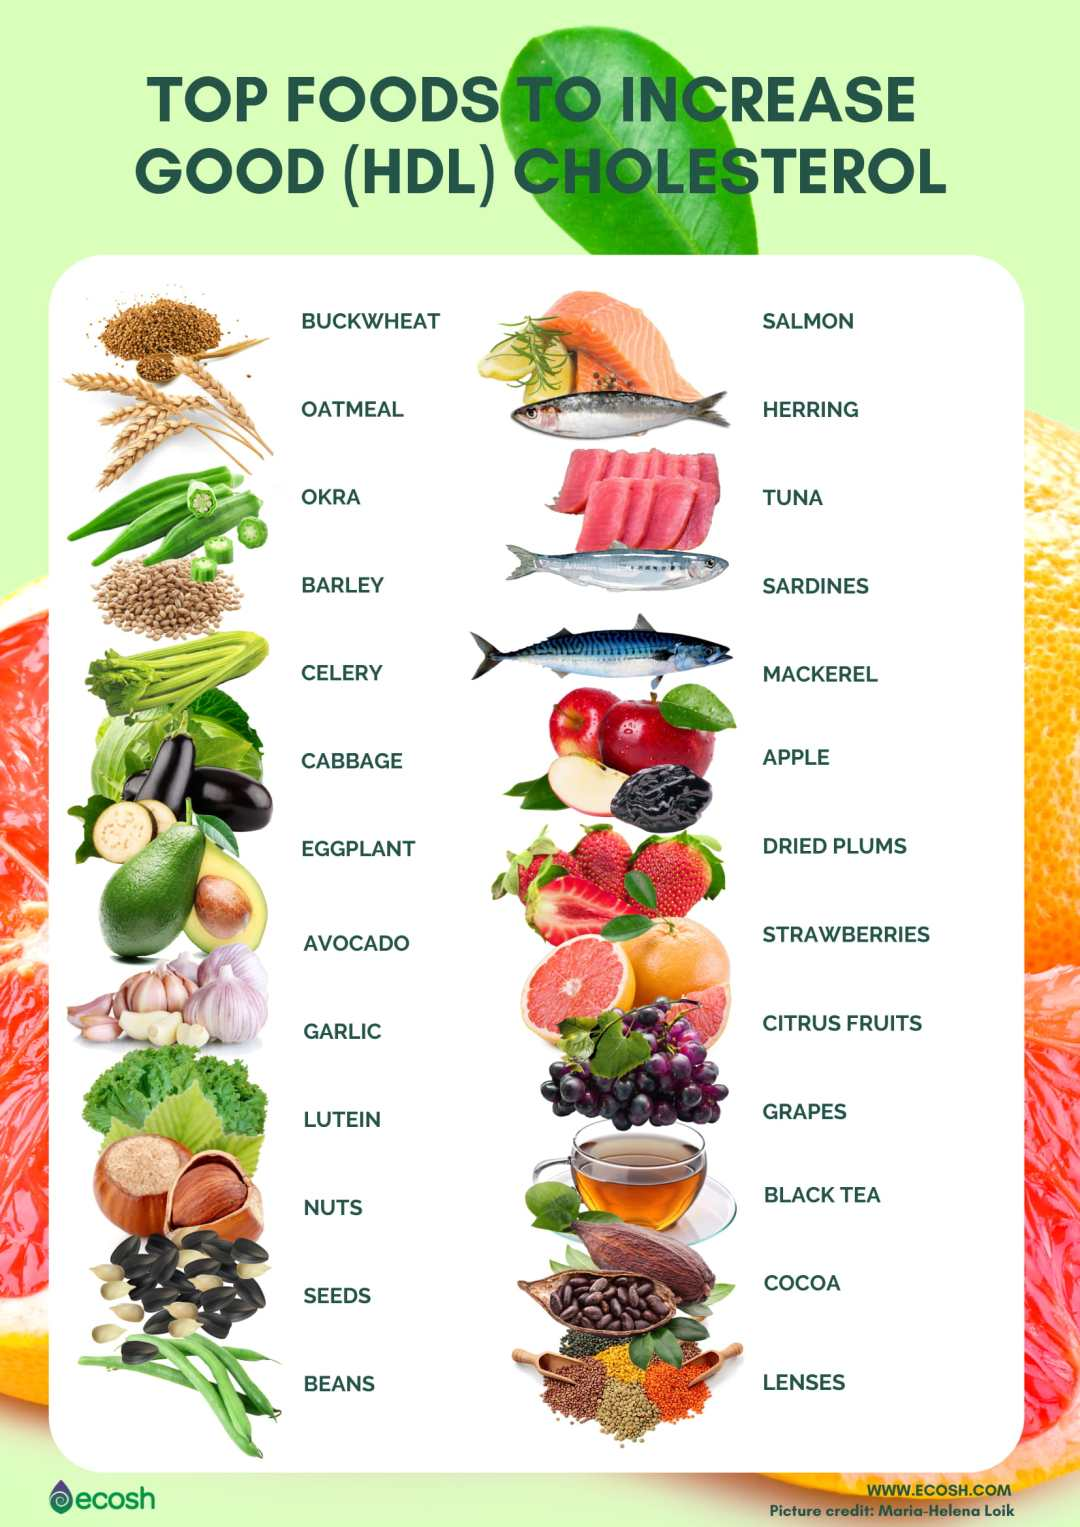 Cholesterol (HDL and LDL) - How To Lower Your Bad Cholesterol Naturally and Easy_TOP FOODS TO INCREASE GOOD (HDL) CHOLESTEROL